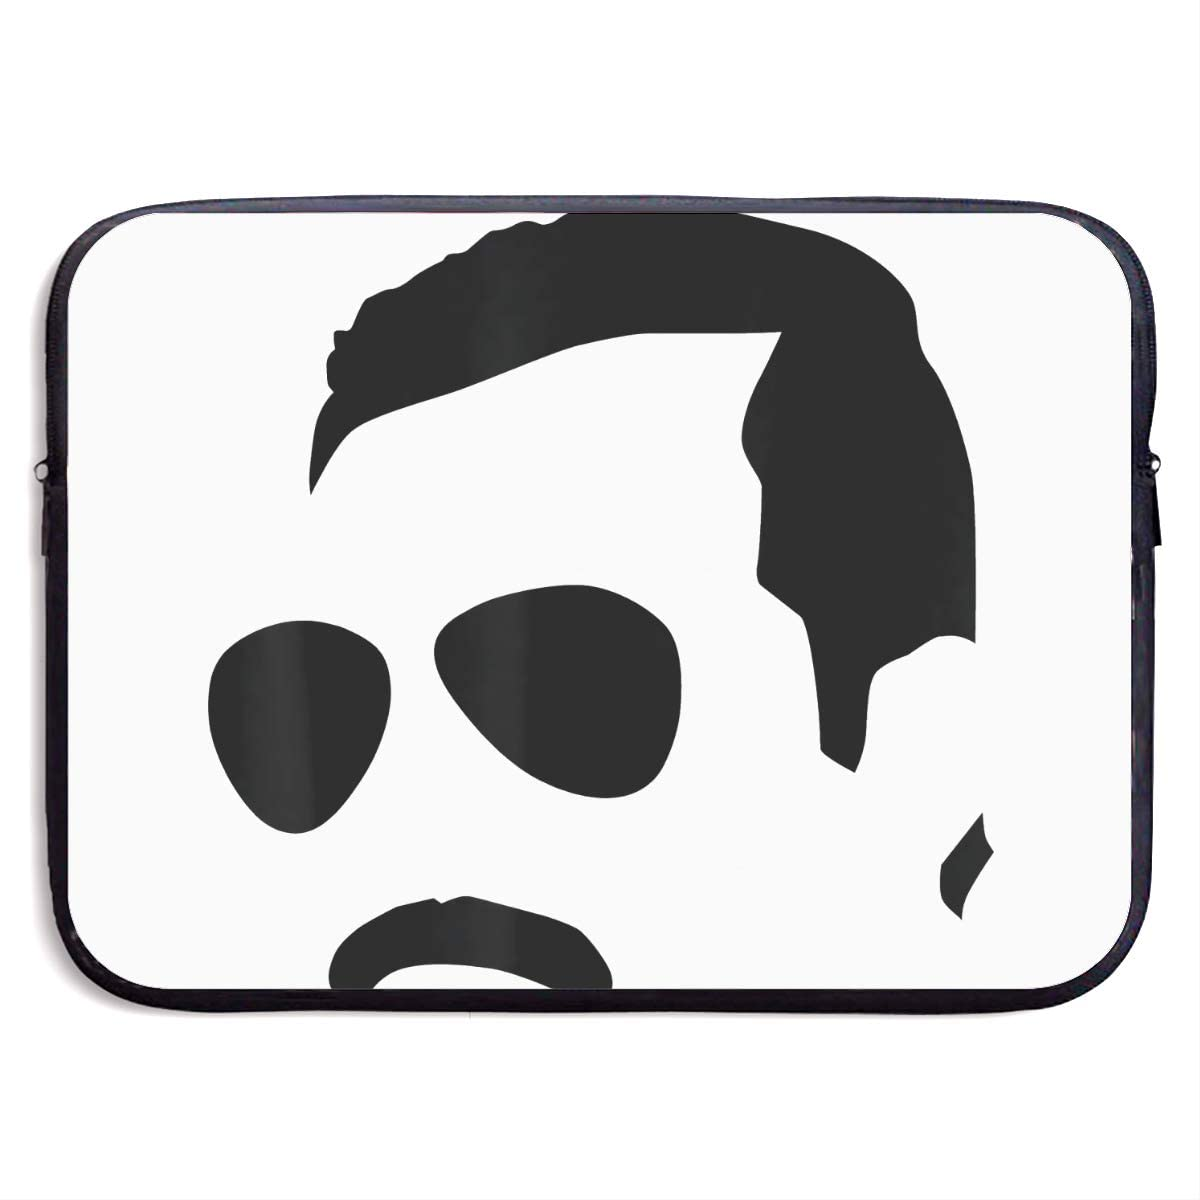 Laptop Sleeve Bag Freddie Mercury 13/15 Inch Notebook Computer, Vertical Style Water Repellent Polyester Protective Case Cover 15 Inch Theme Laptop Sleeve Bag